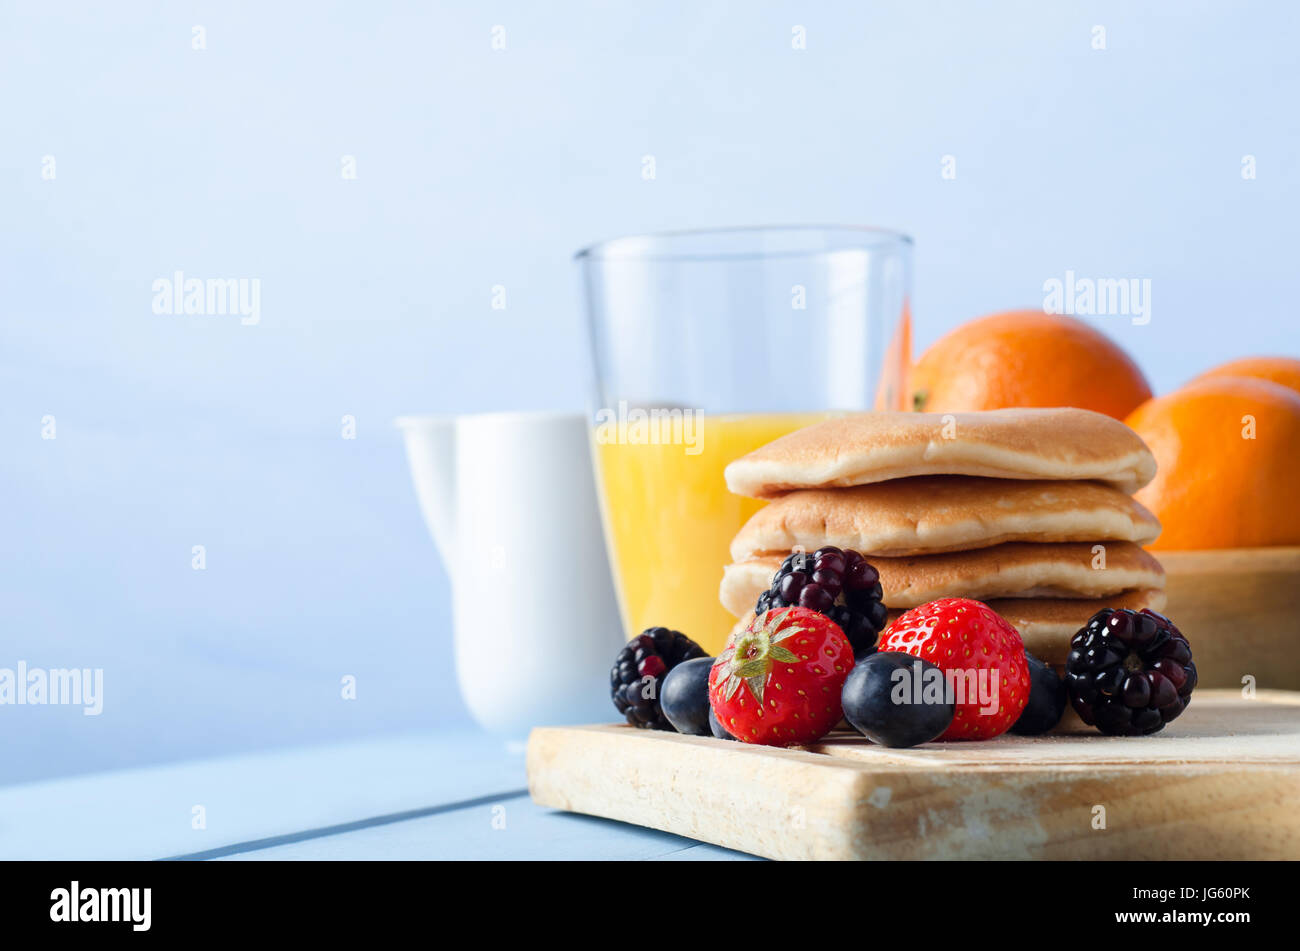 Breakfast table scene with Summer berry fruits and a stack of pancakes on an old wooden chopping board, a bowl of - Stock Image